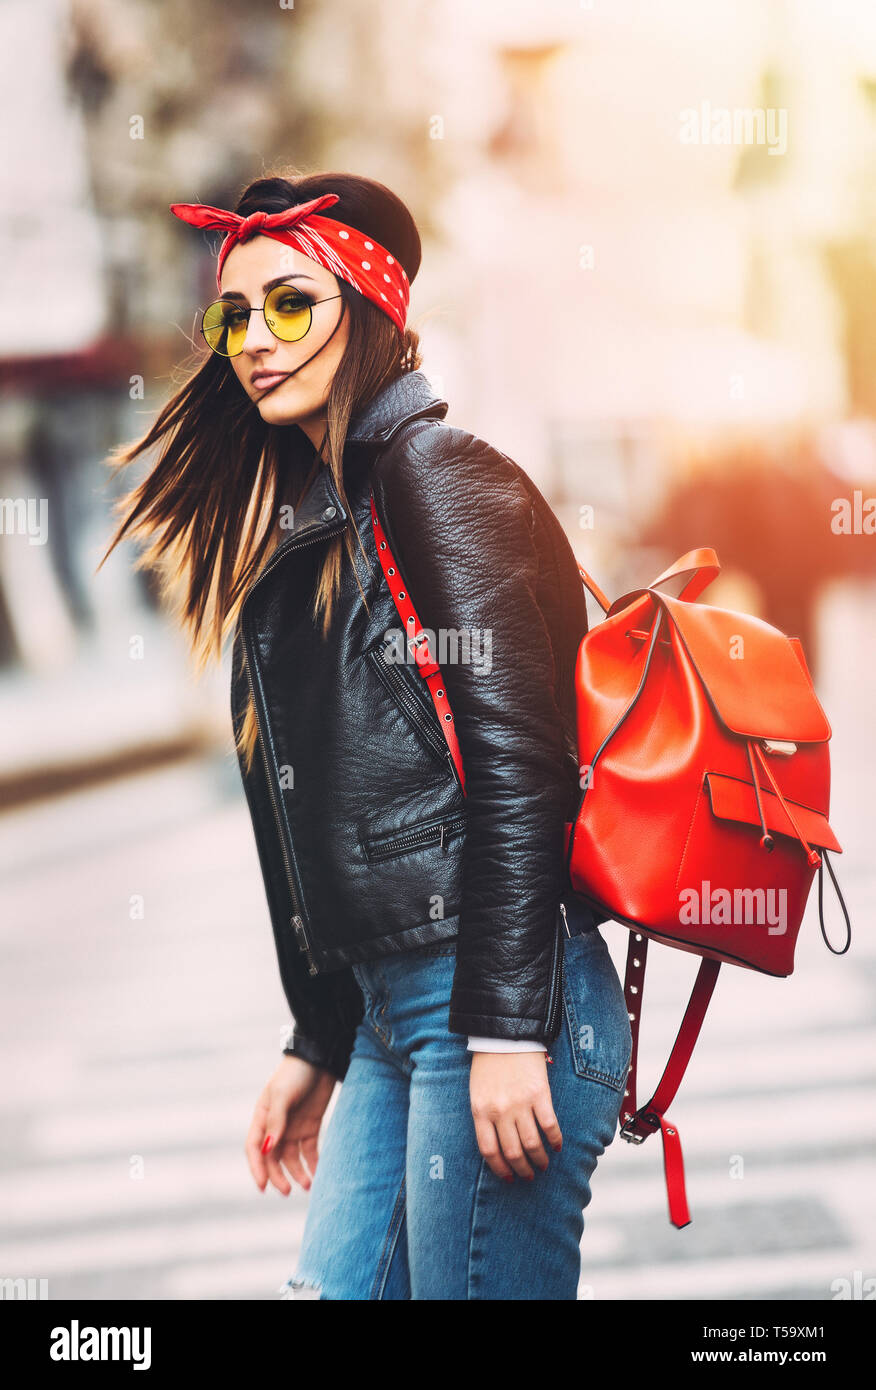 Portrait of young beautiful trendy girl in stylish sunglasses ad